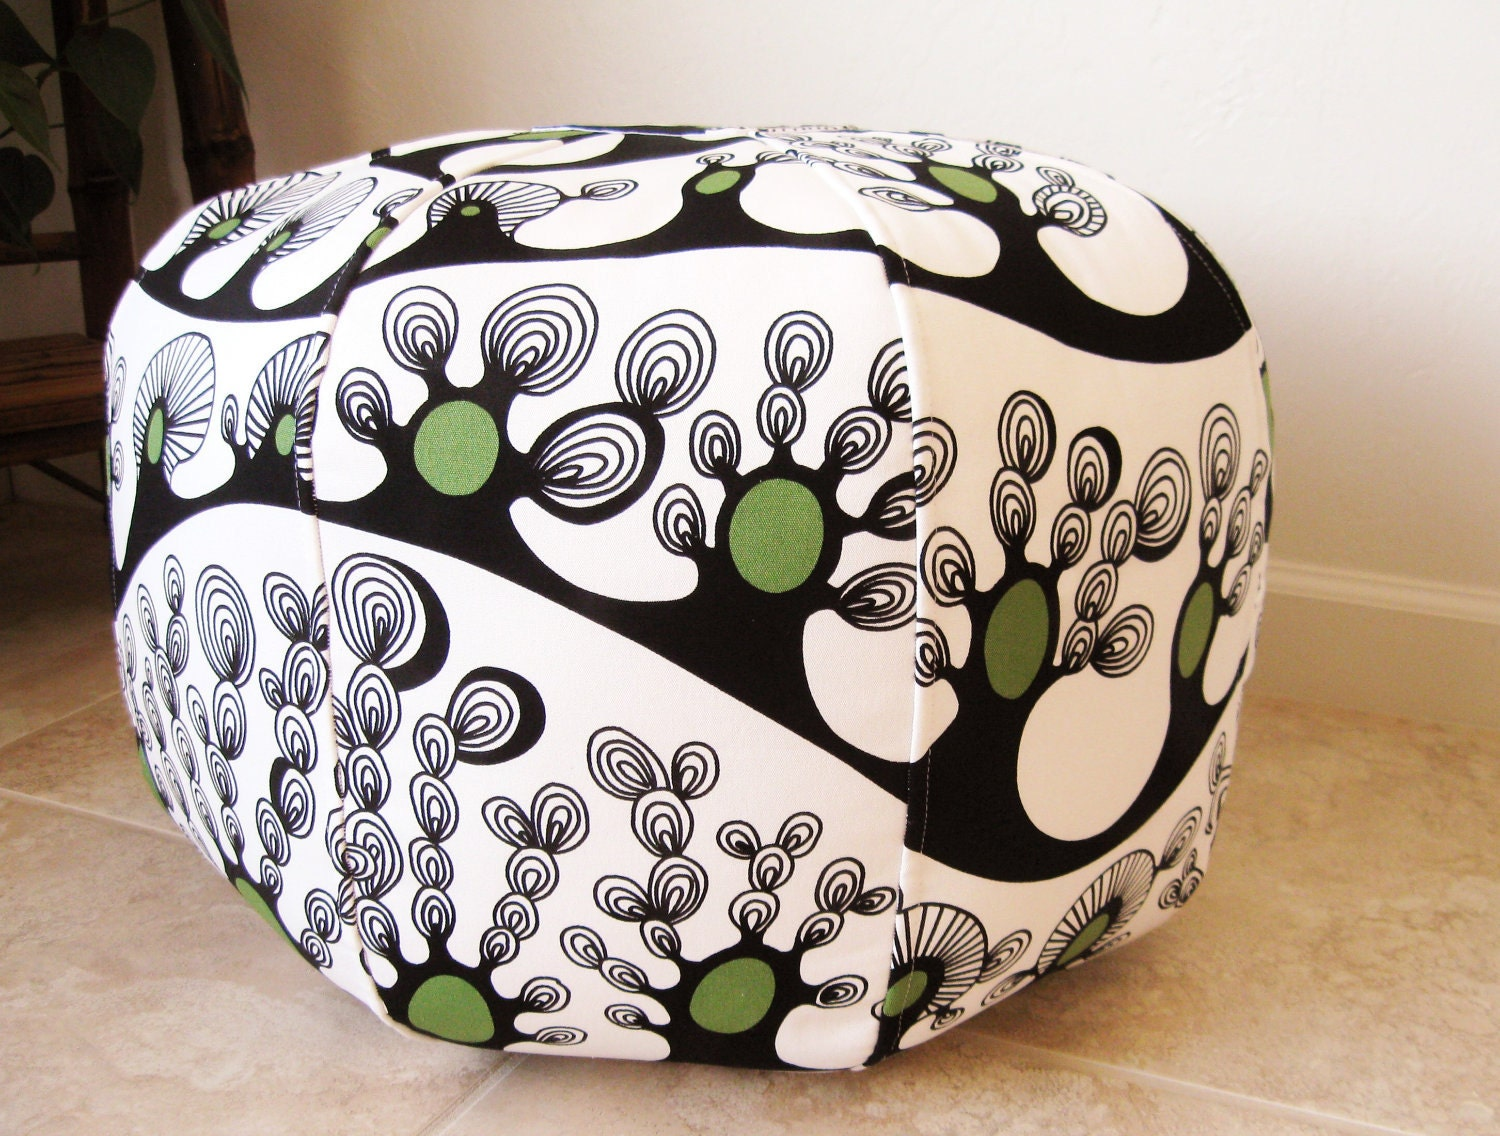 abstract trees ikea fabric 18 pouf ottoman. Black Bedroom Furniture Sets. Home Design Ideas